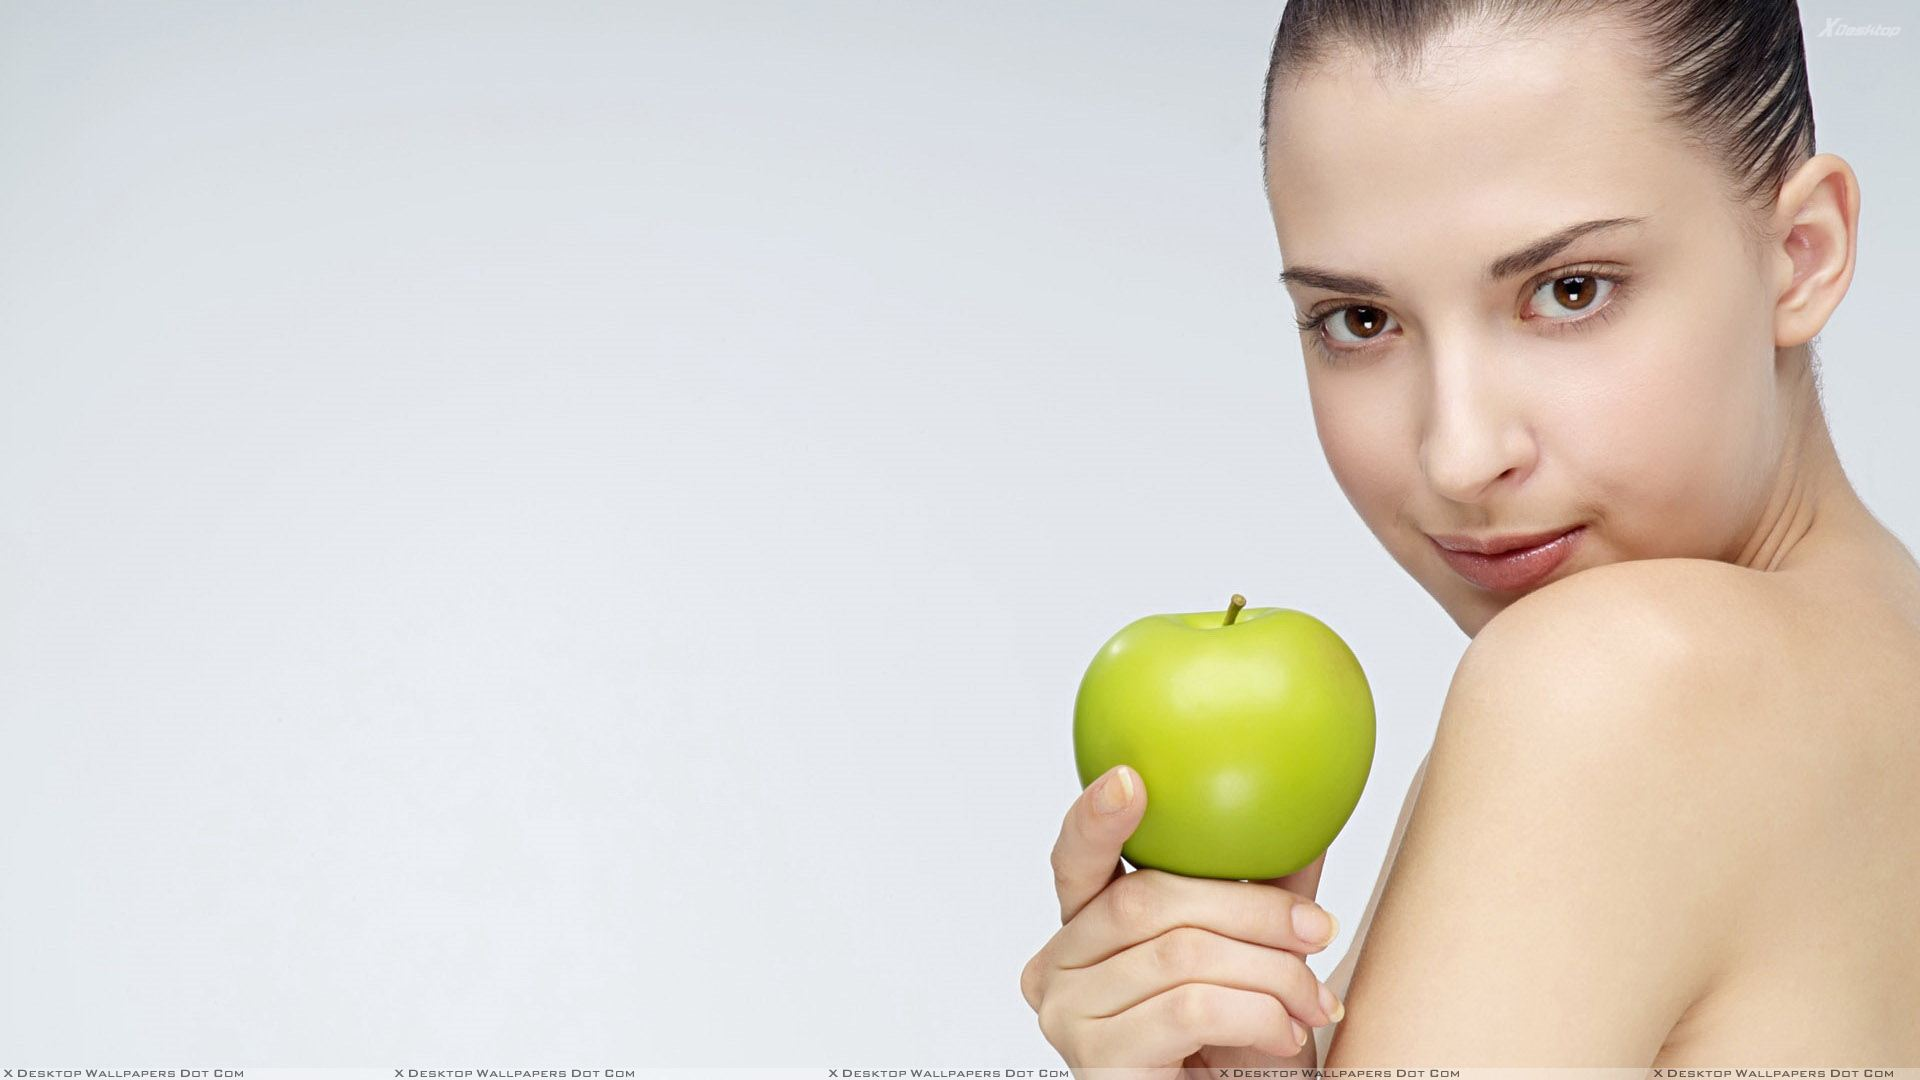 Girl Showing Green Apple Photoshoot